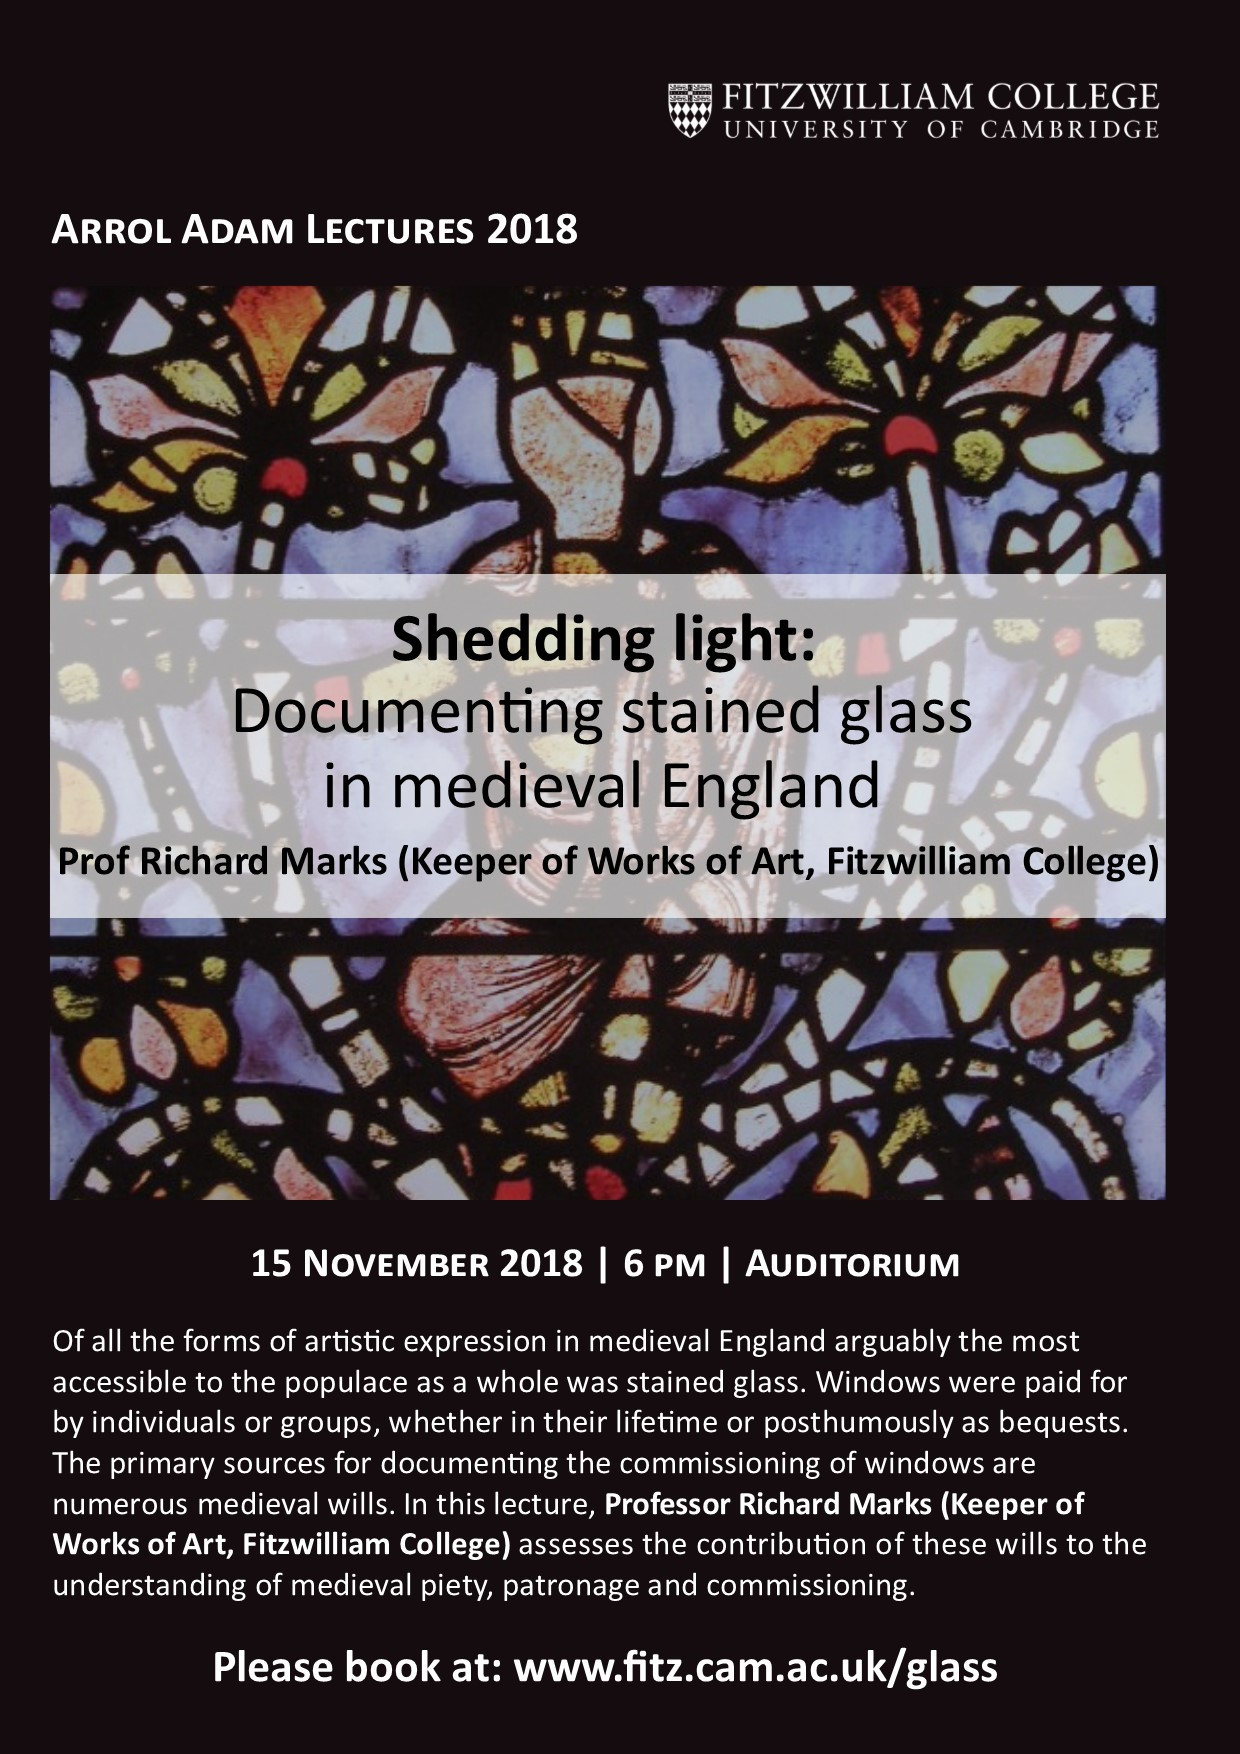 Arrol Adam: Stained glass in medieval England